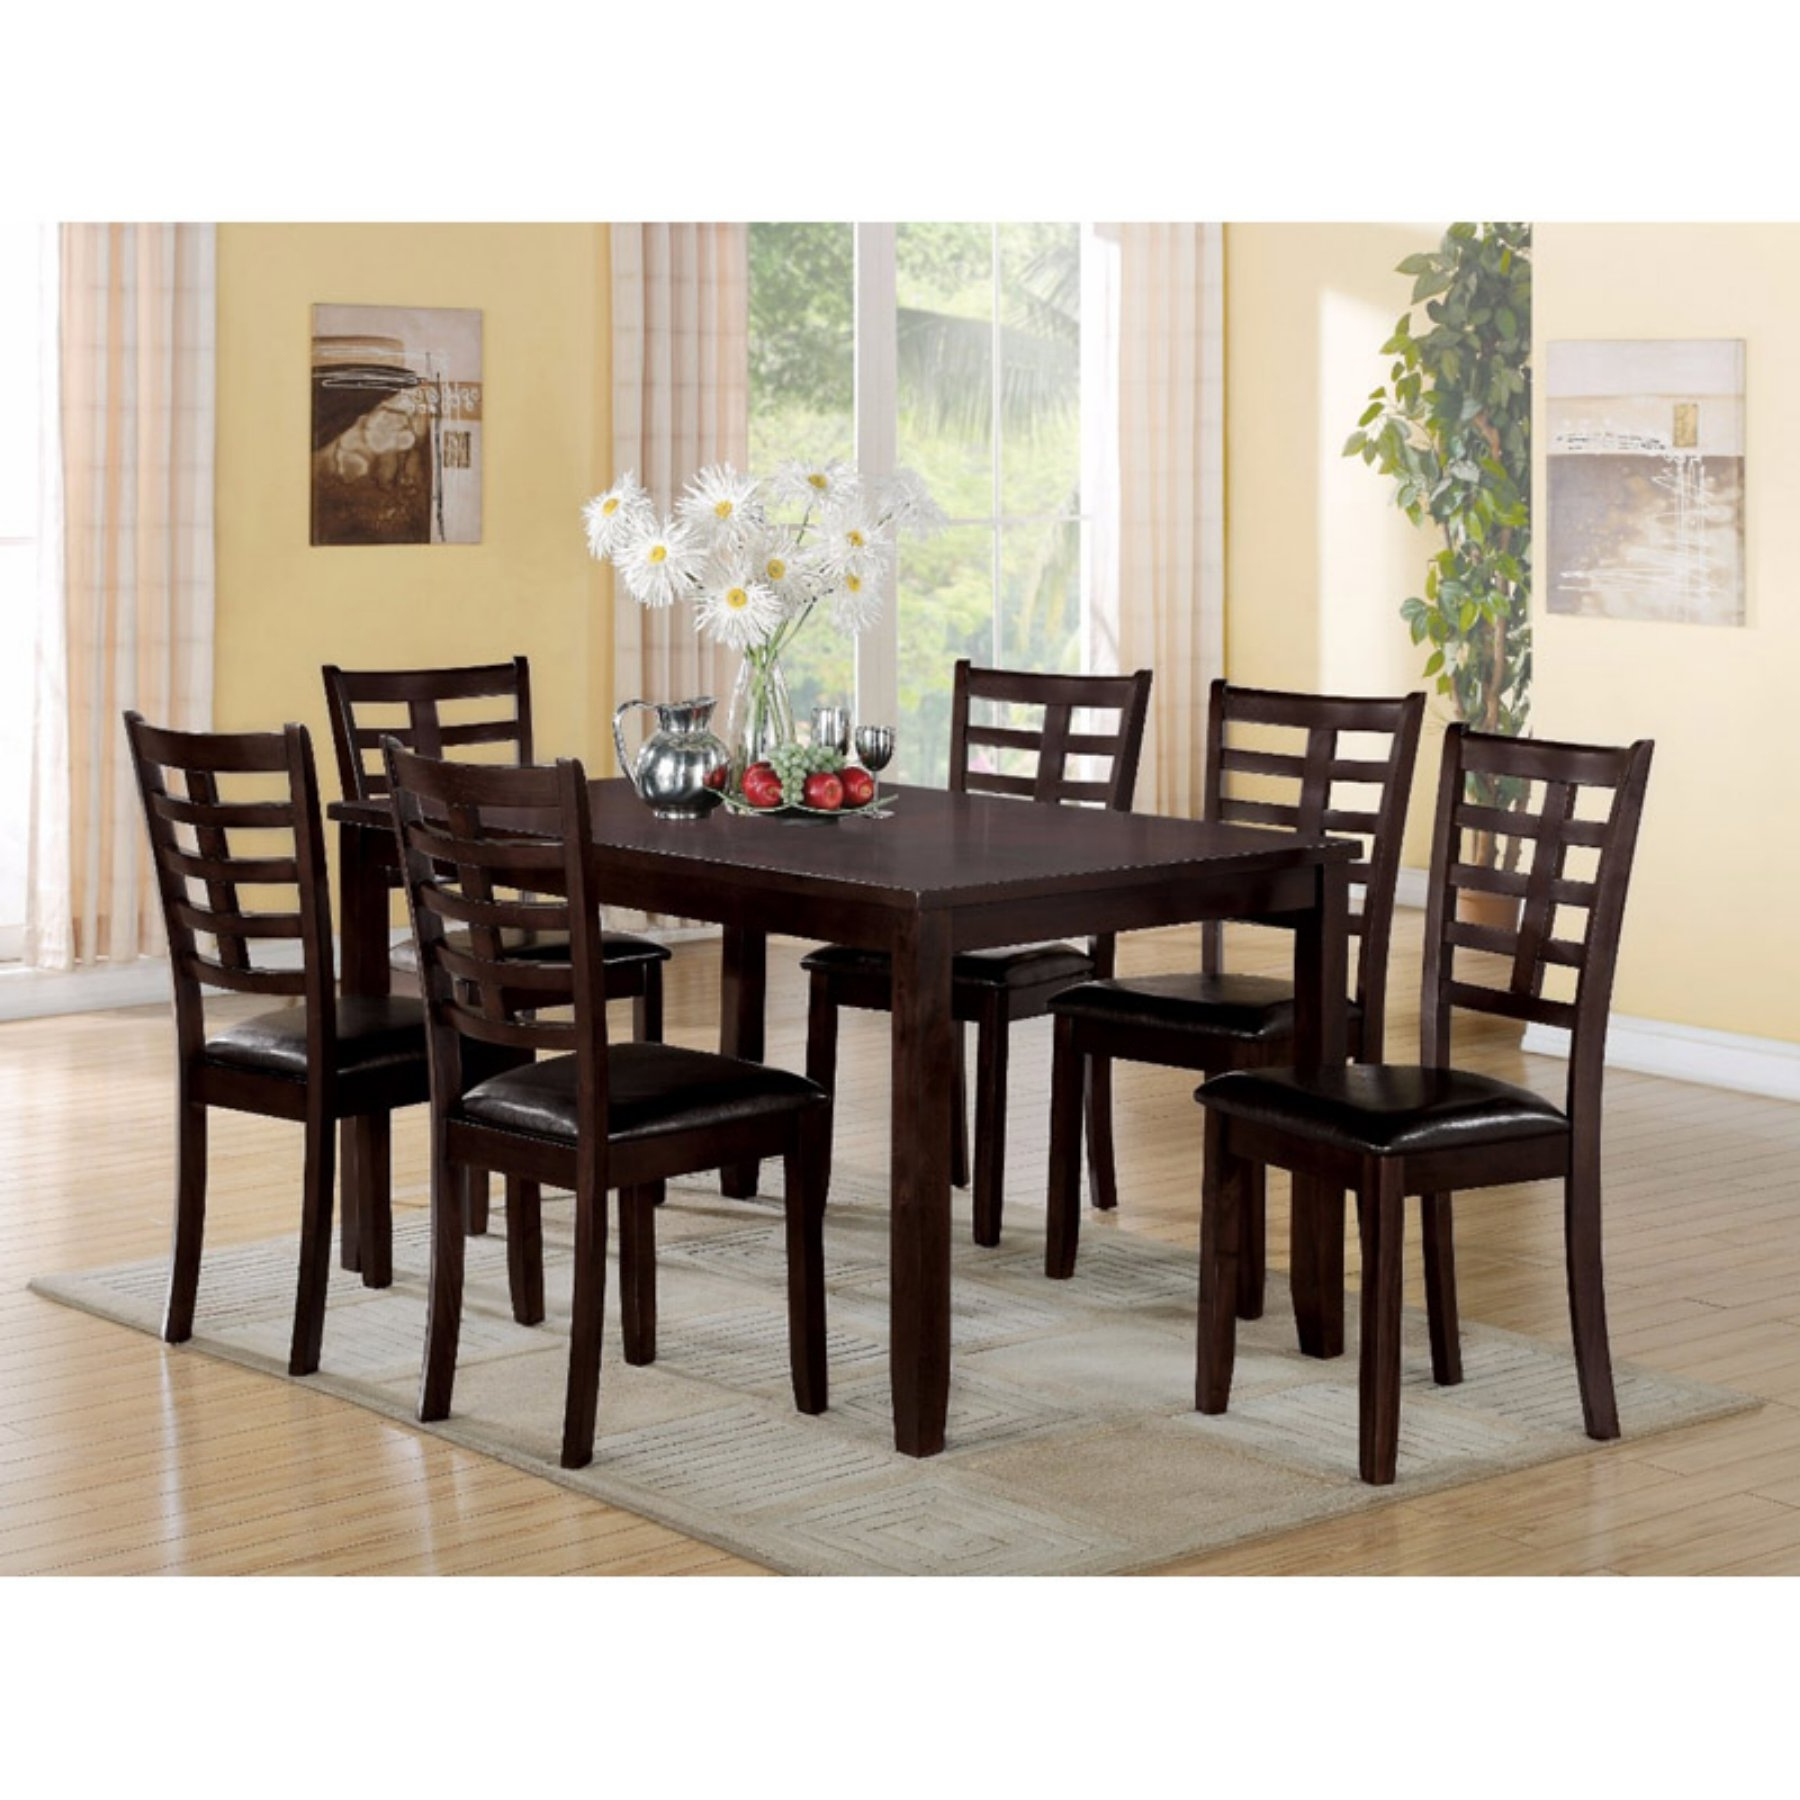 Market 7 Piece Dining Sets With Side Chairs Within Preferred Benzara Wooden 7 Piece Rectangular Dining Table Set In (View 12 of 25)